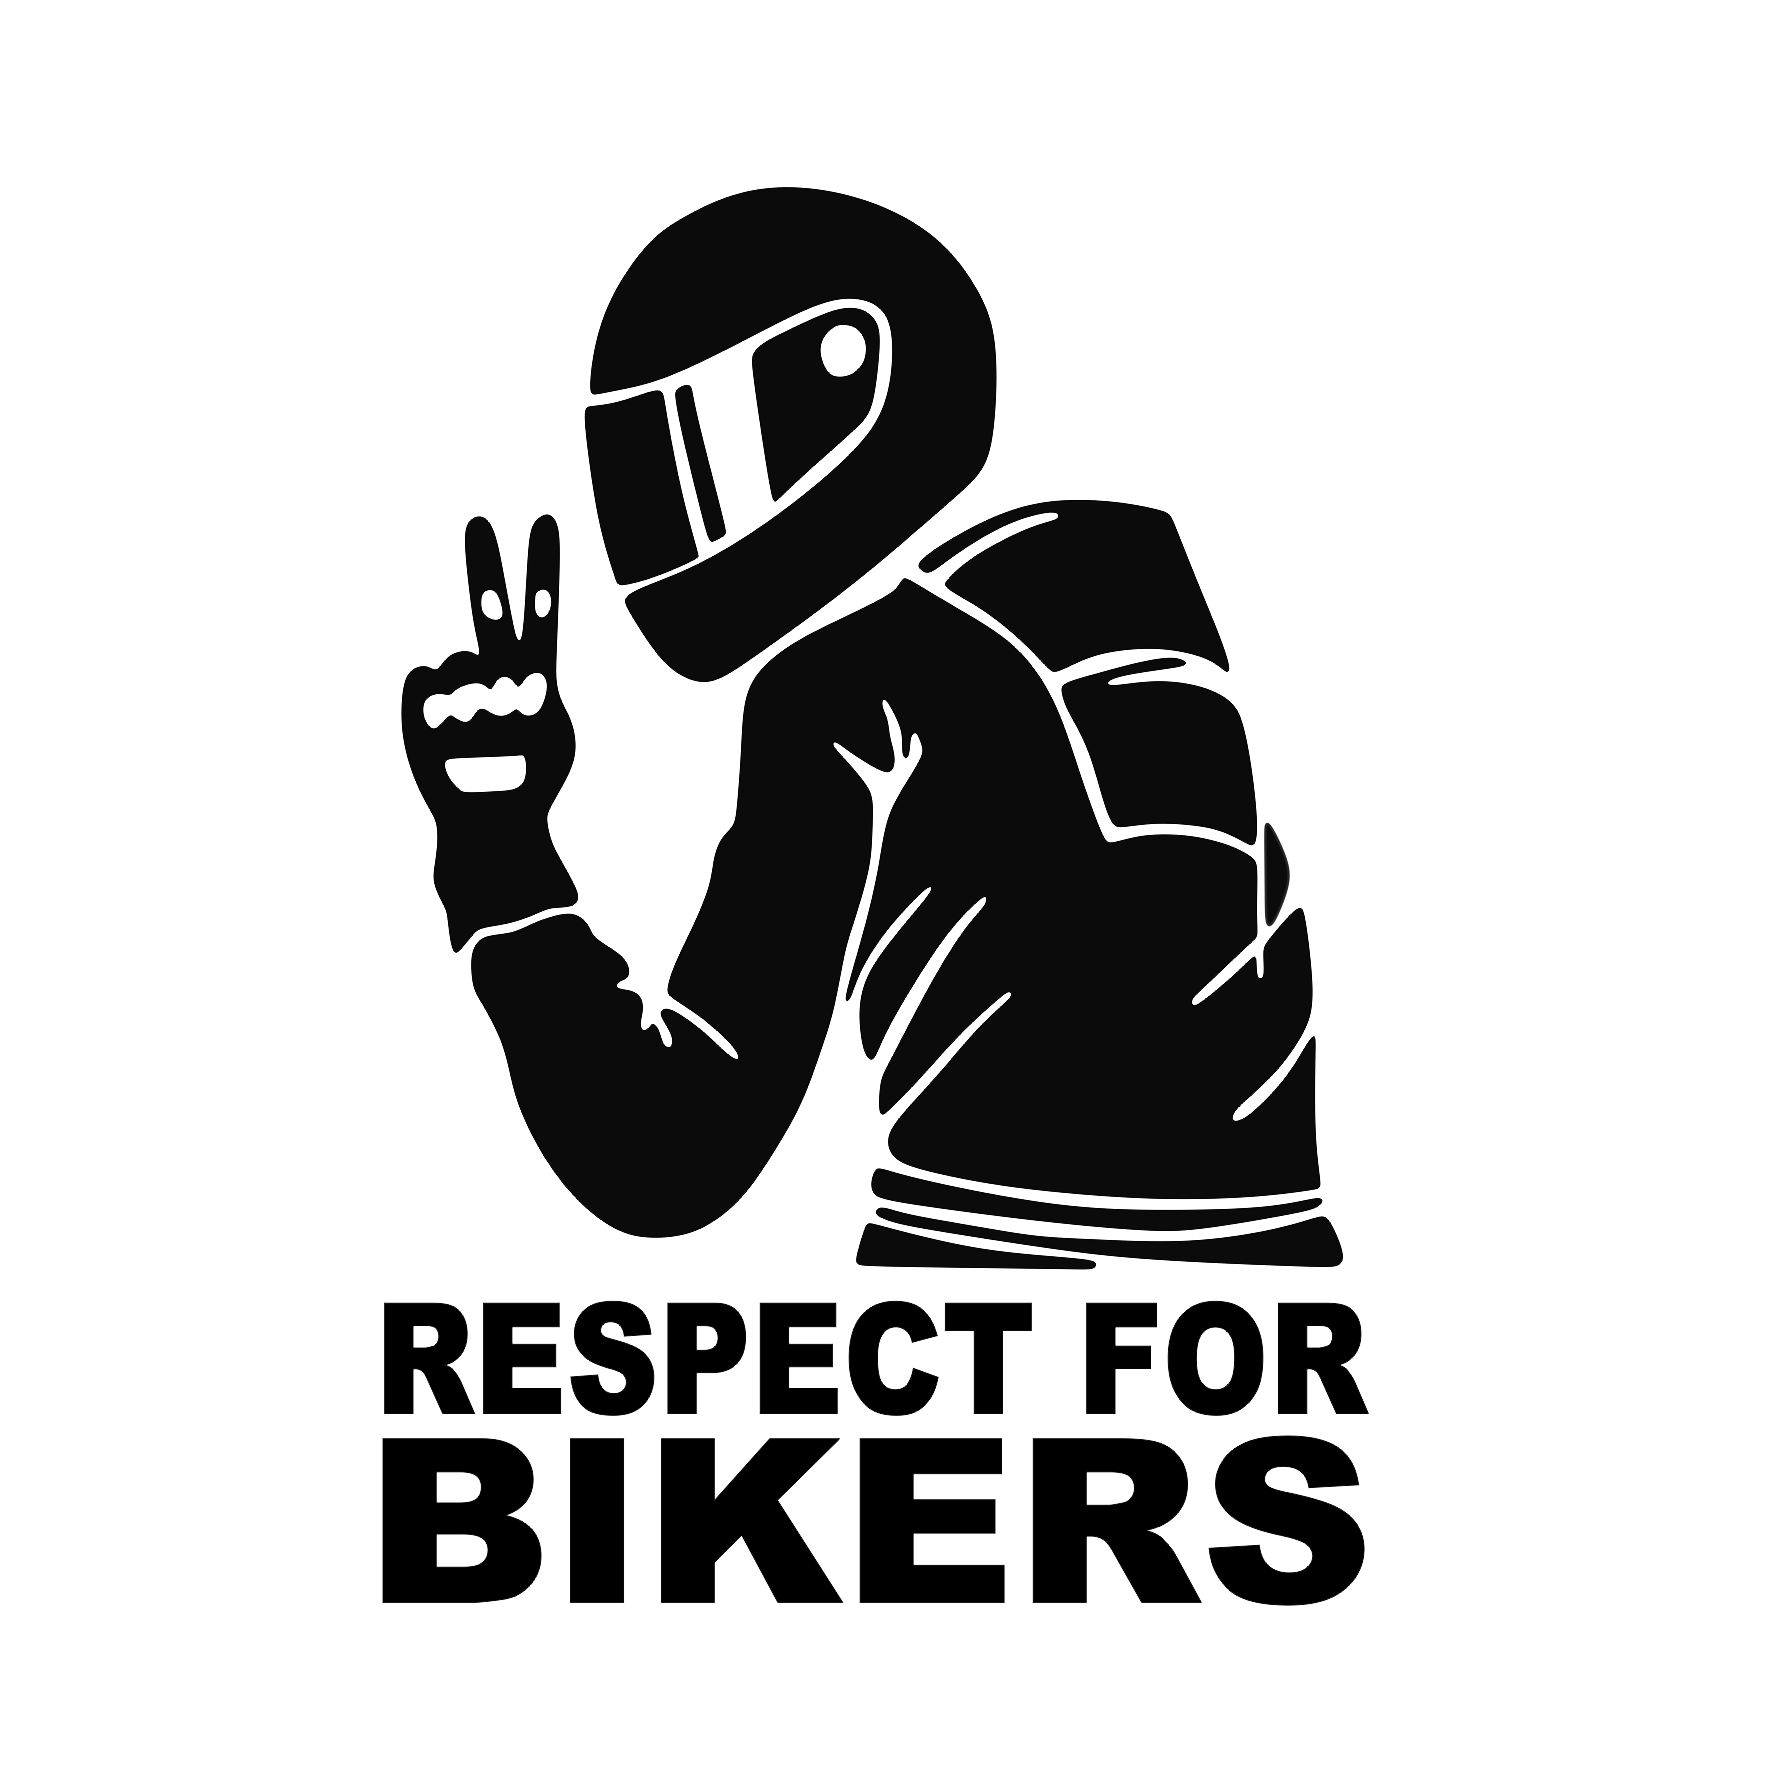 Samolepka na auto - Respect for bikers